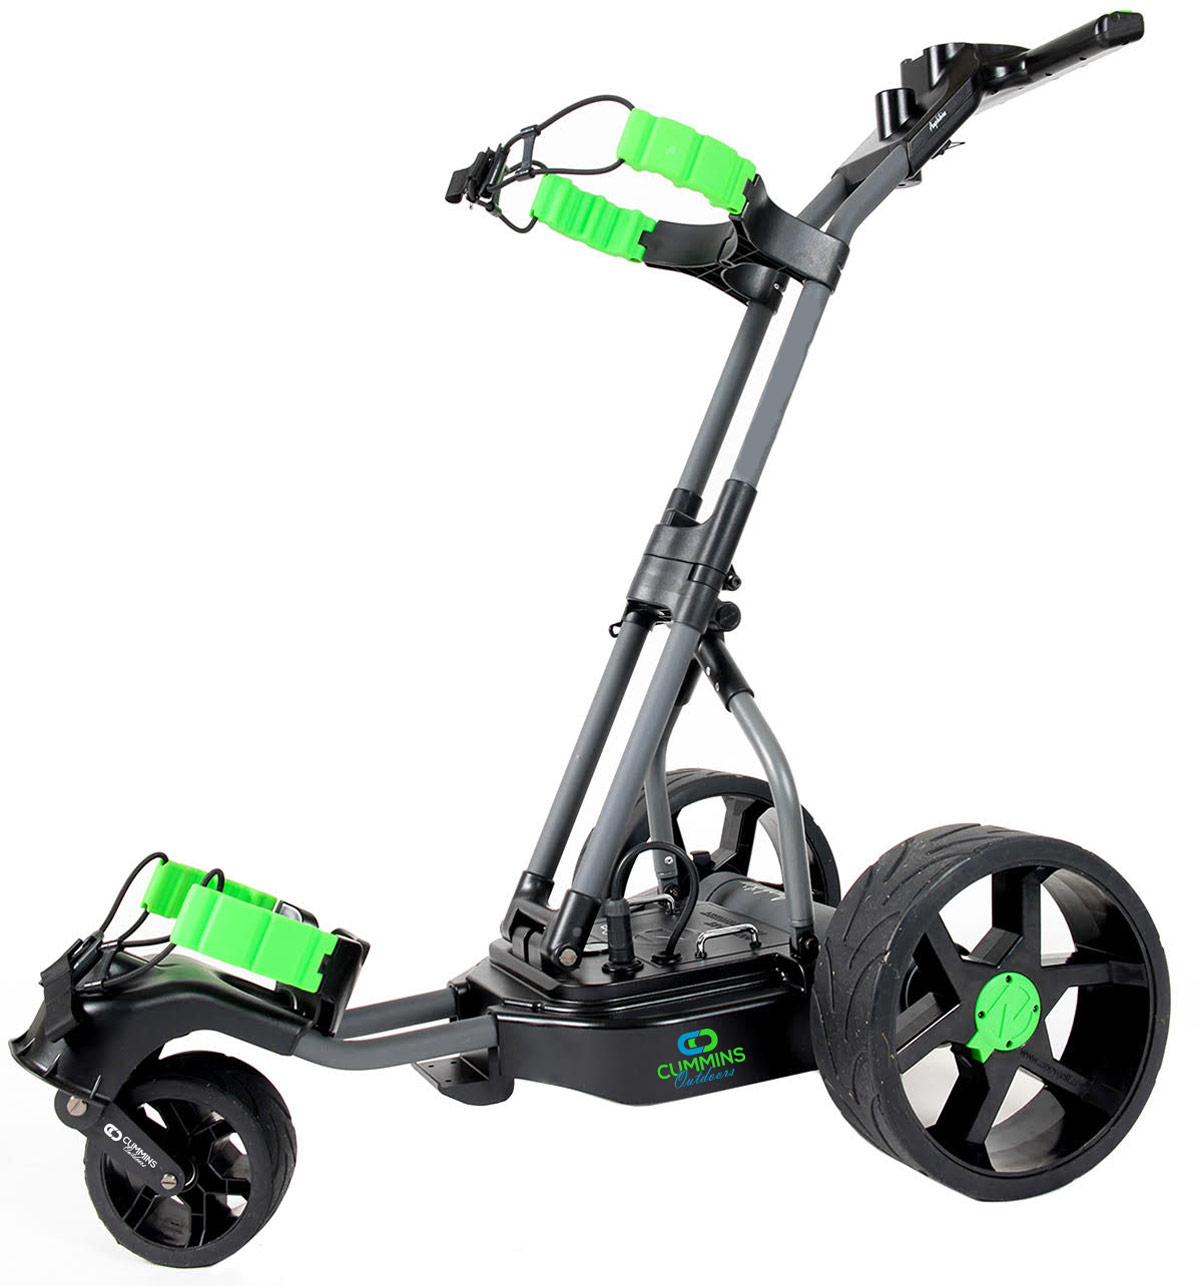 The Alligator 100% Waterproof Electric Remote-Control Golf Caddie